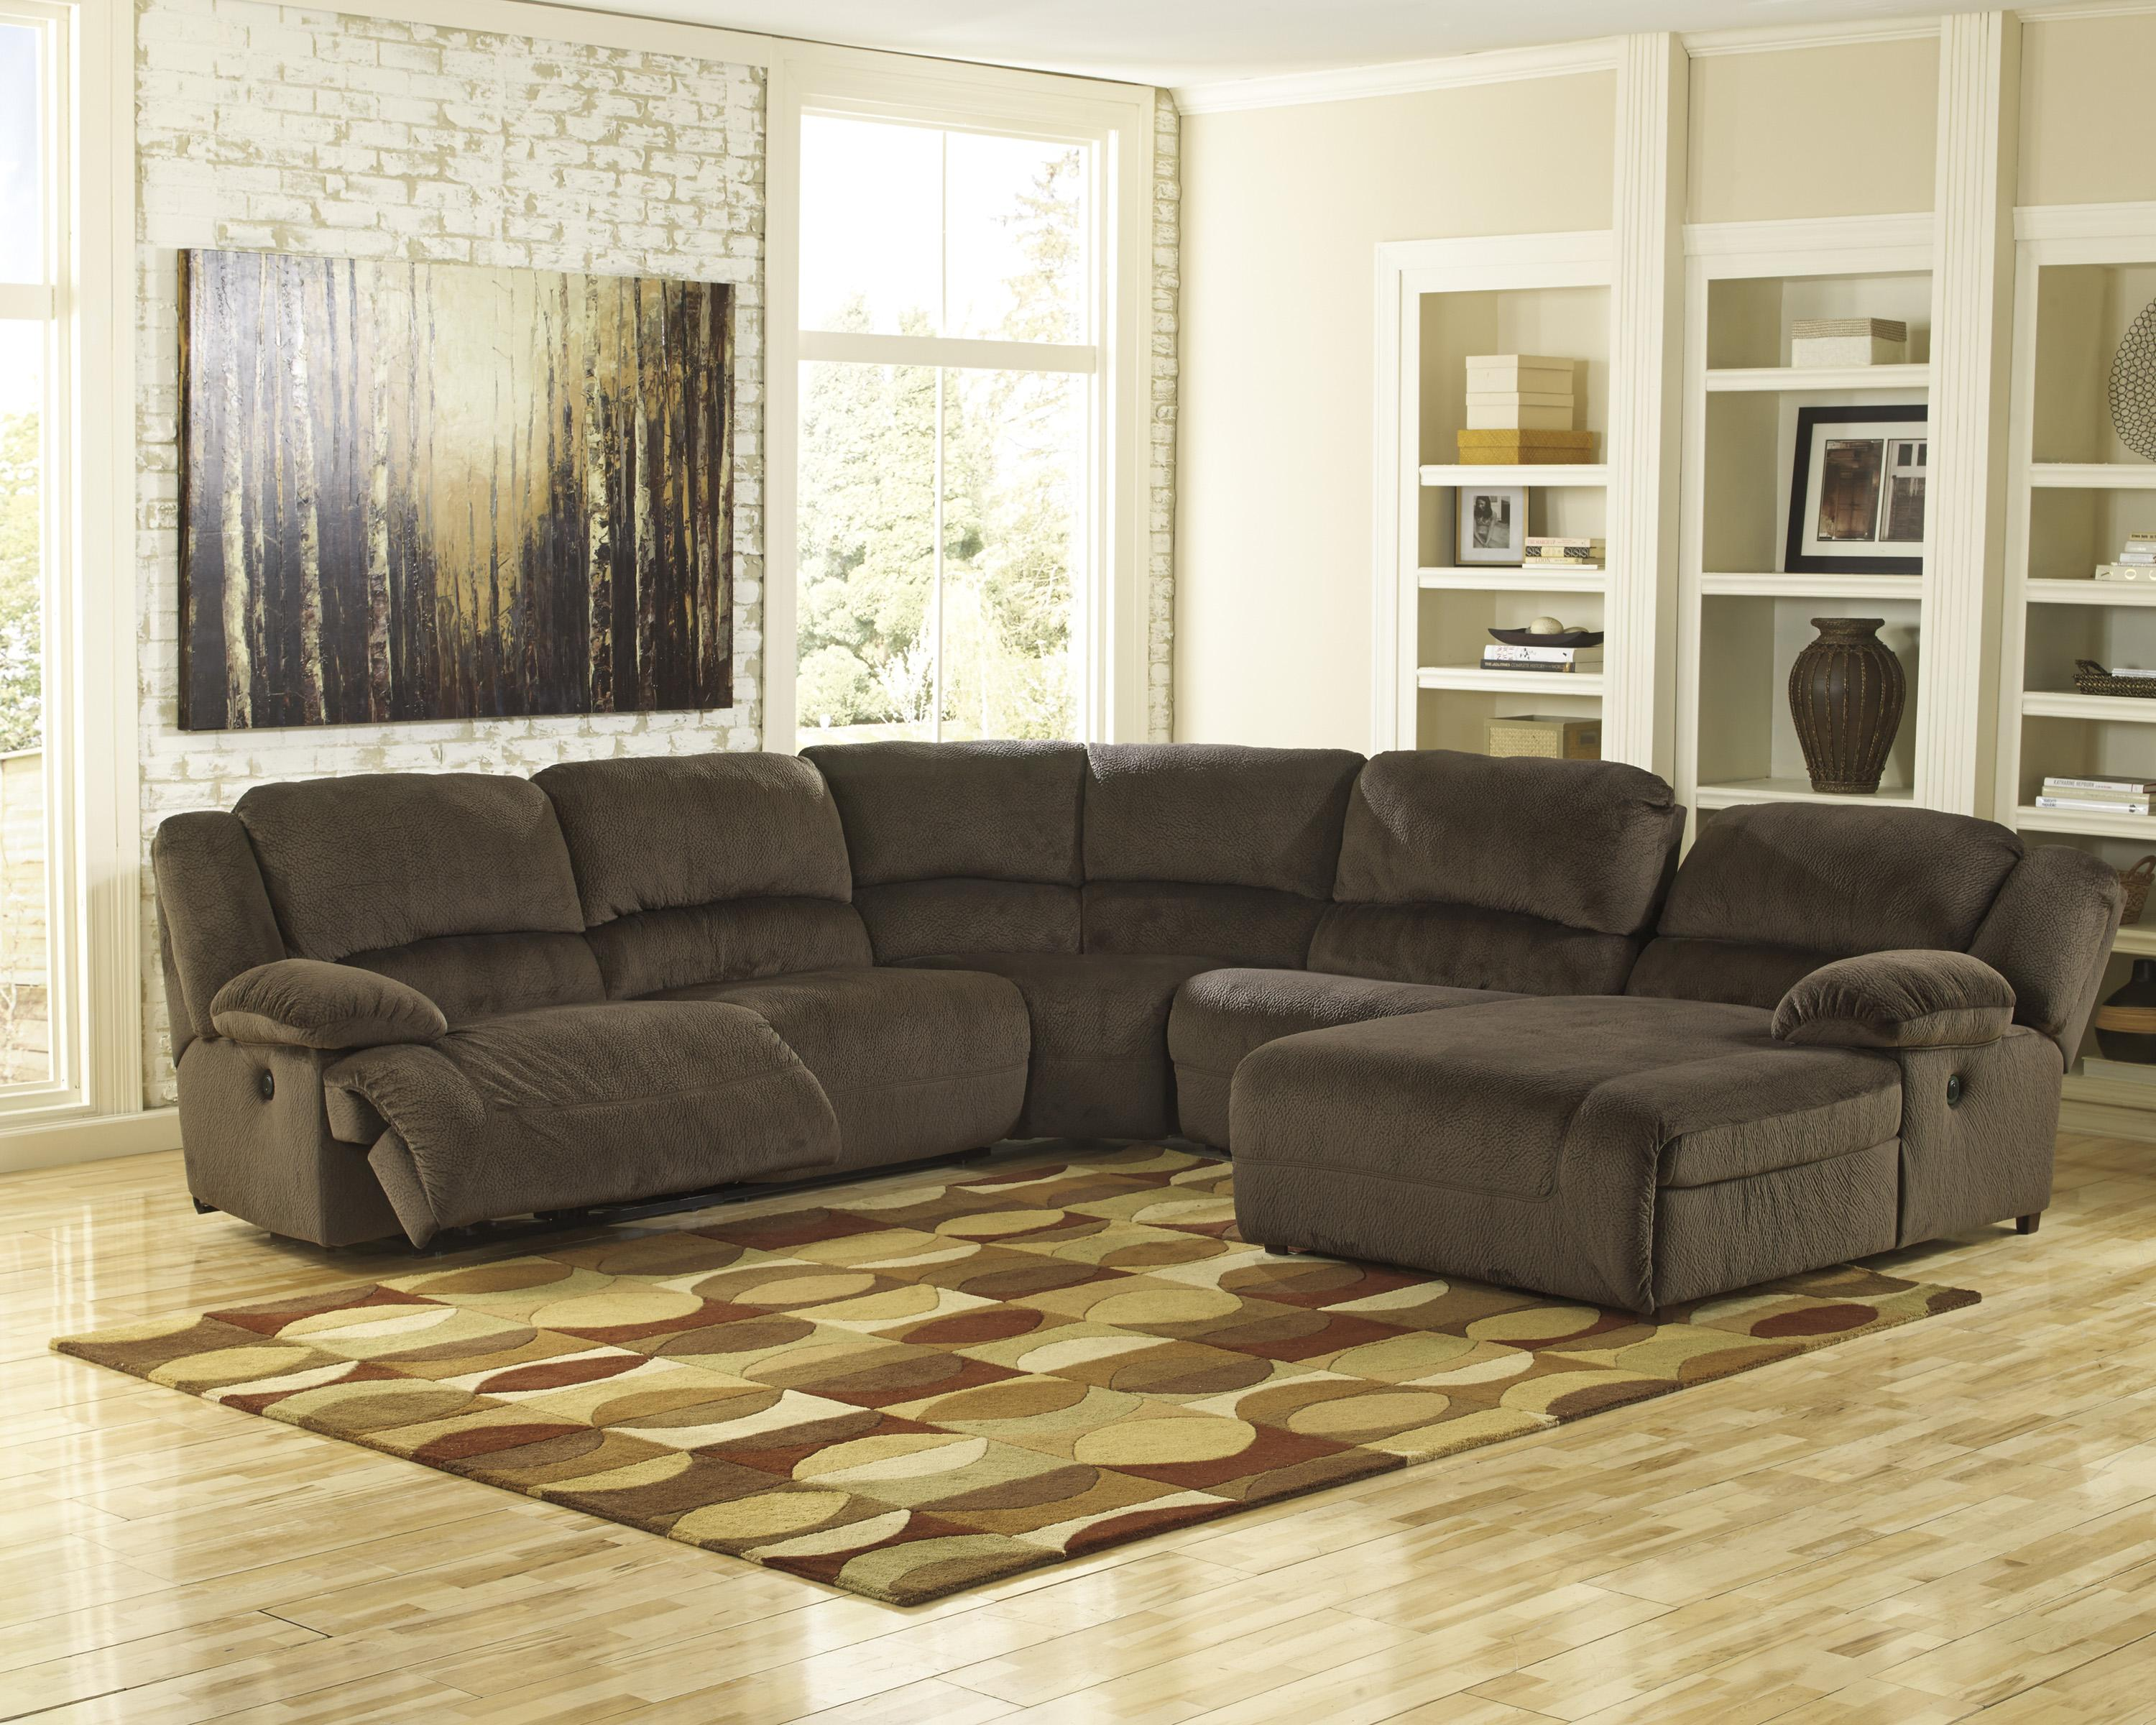 Power reclining sectional with right press back chaise by for Ashley sectional with chaise